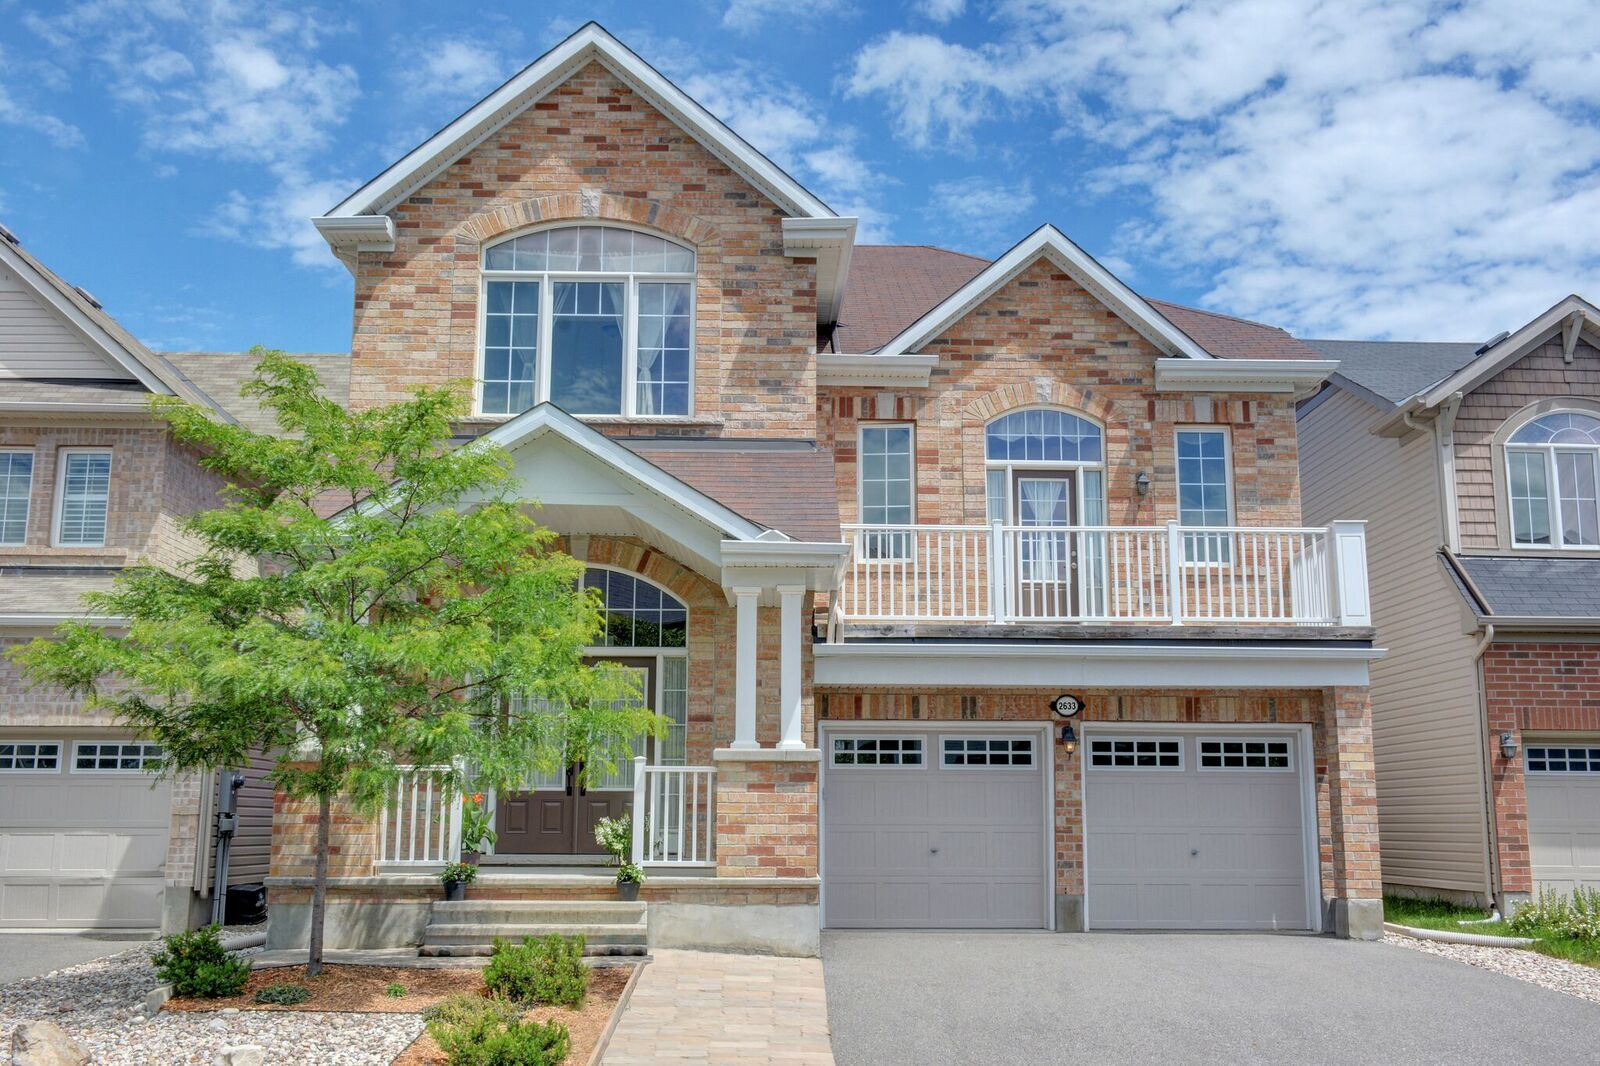 2633 Watermusic Bay - Stunning and Spacious Detached Home in Half Moon Bay!